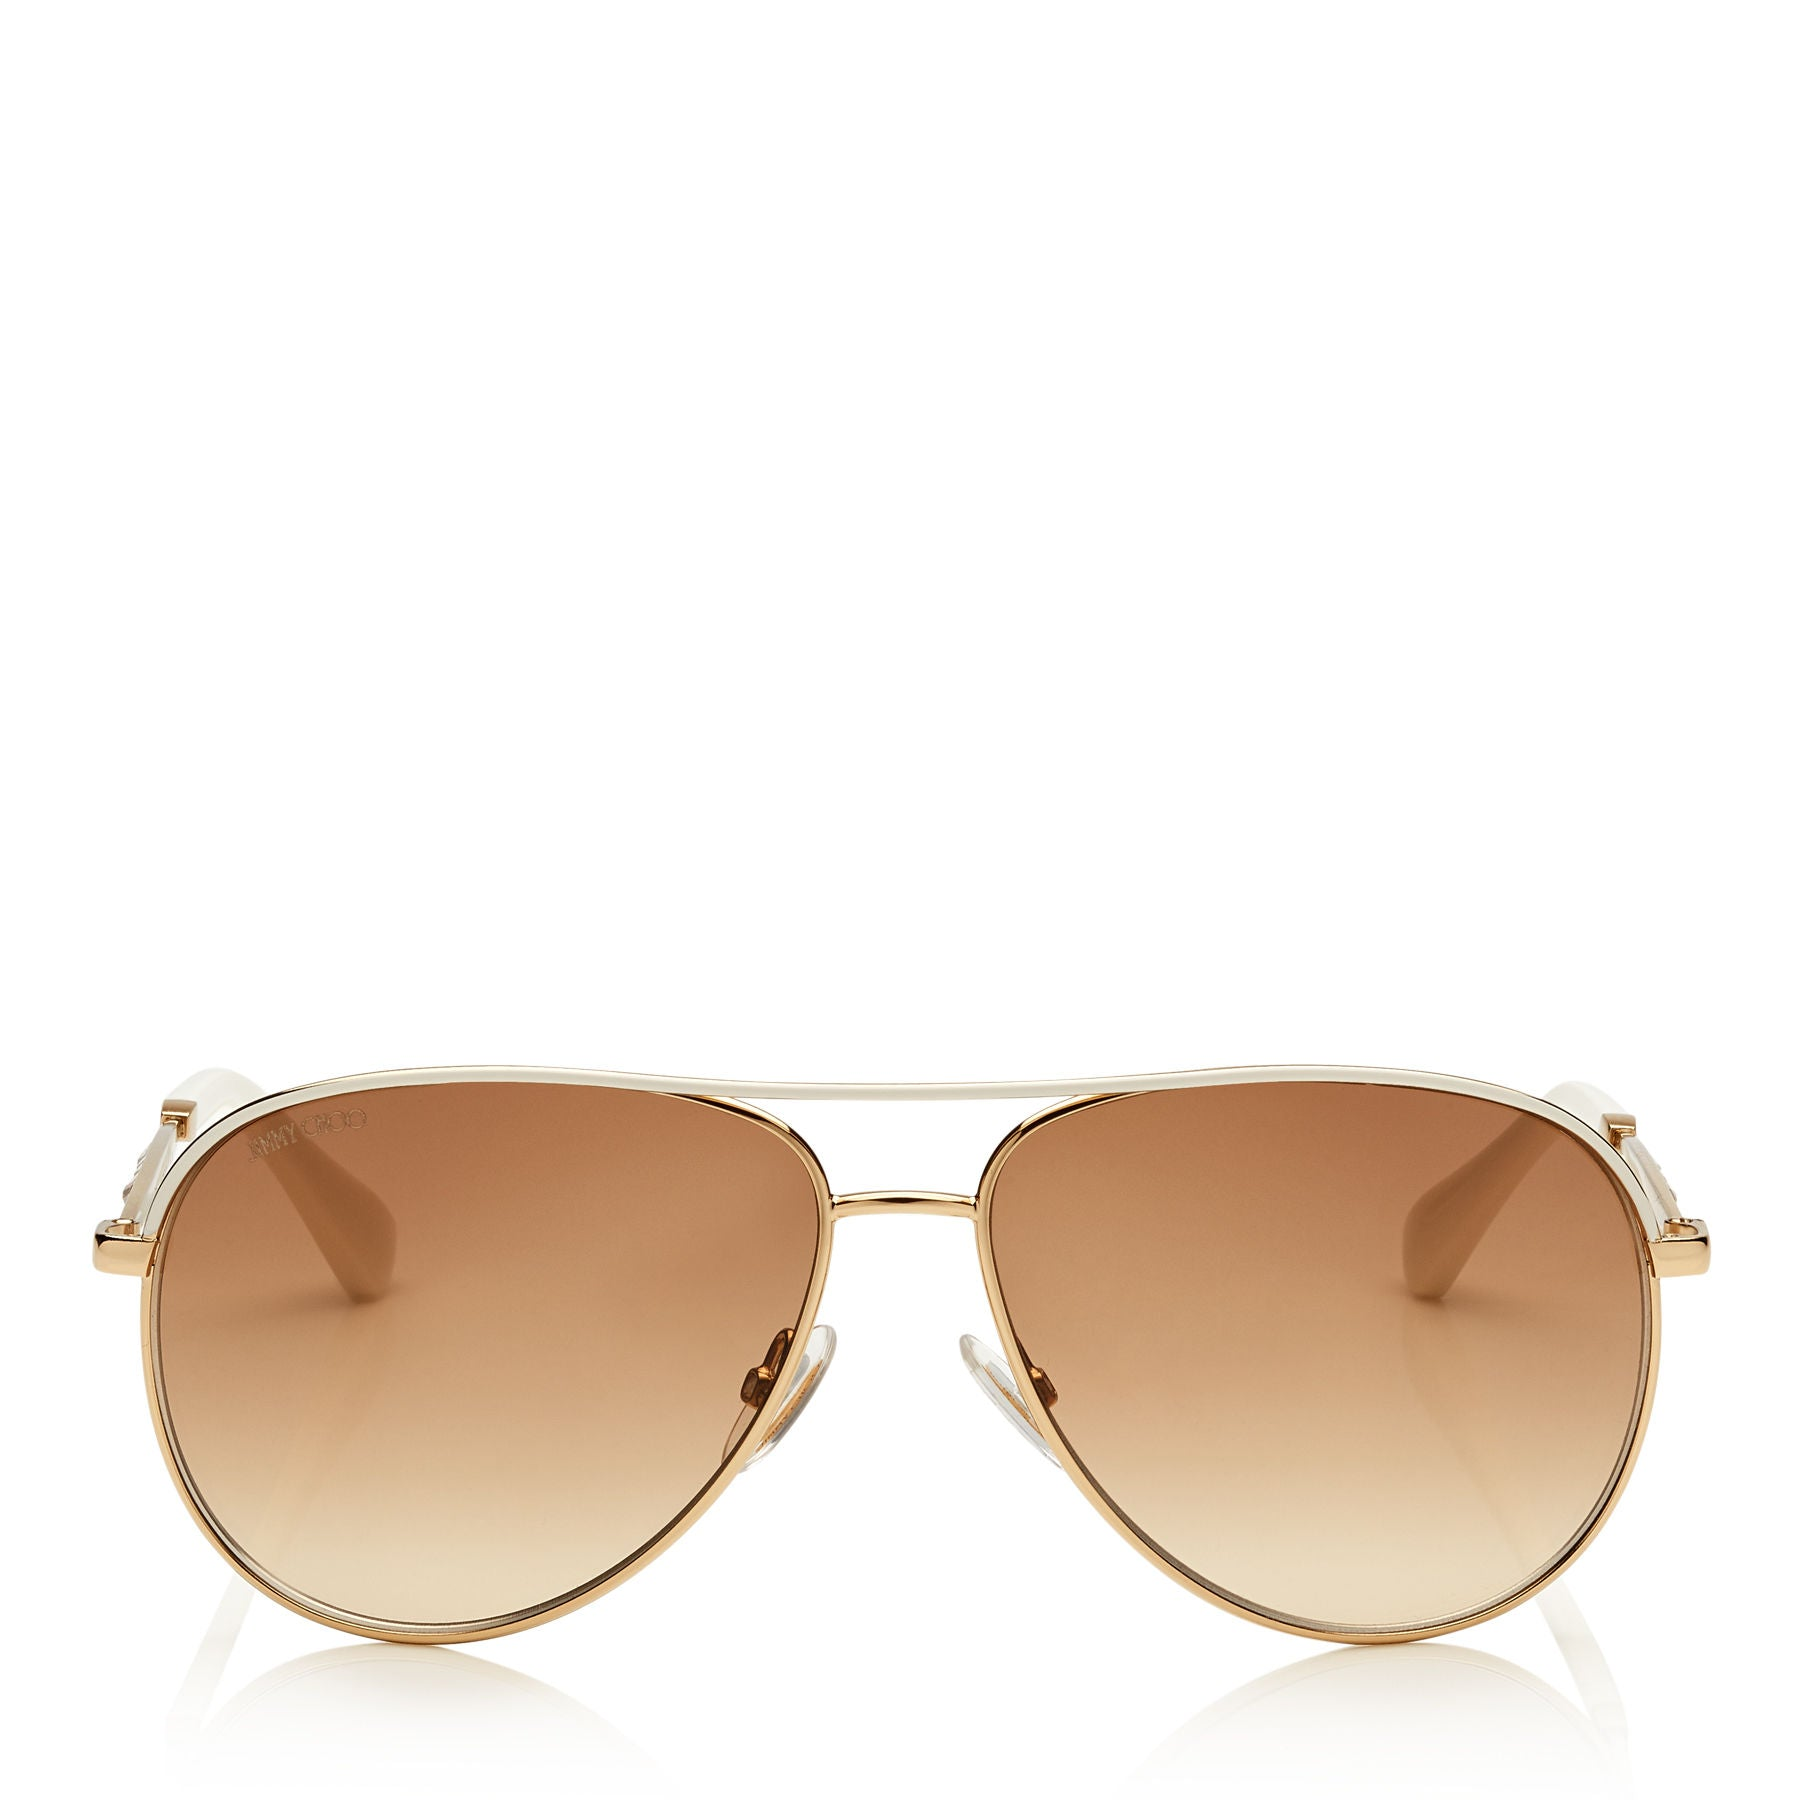 JIMMY CHOO Jewly Rose Gold and Ivory Aviator Sunglasses ITEM NO. JEWLYS58E150